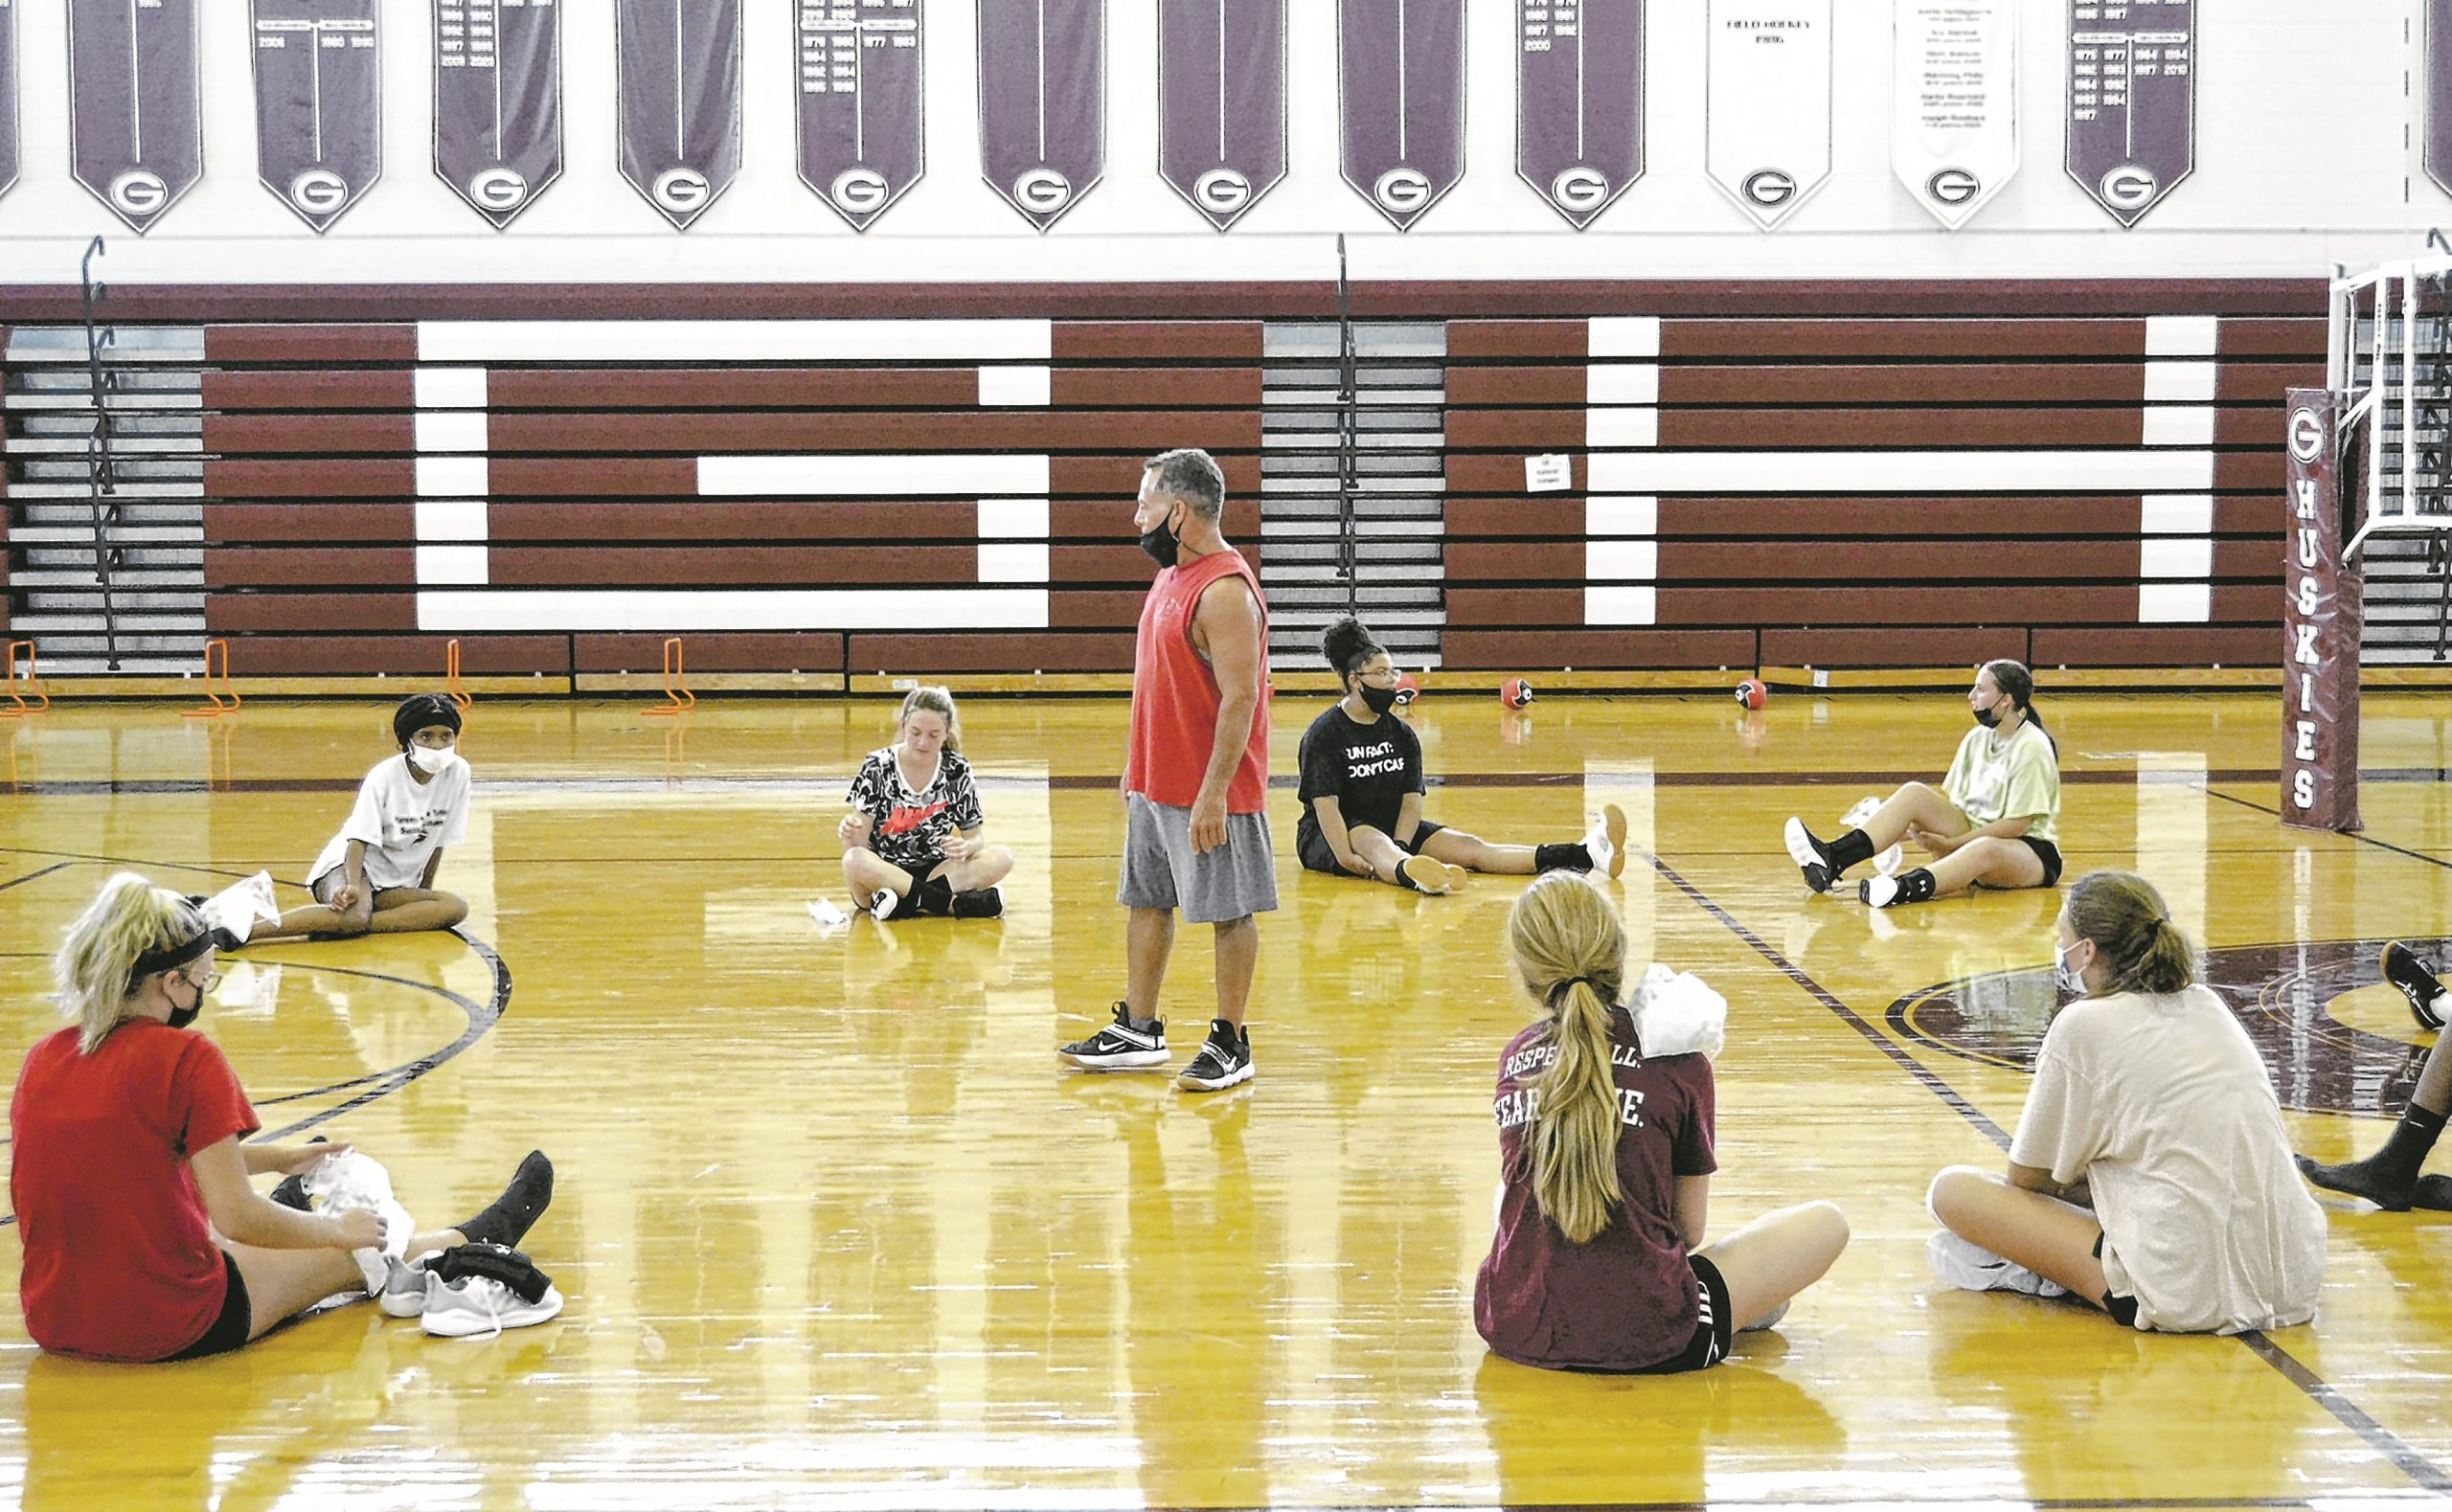 Low on numbers and experience, Gloversville facing rebuild